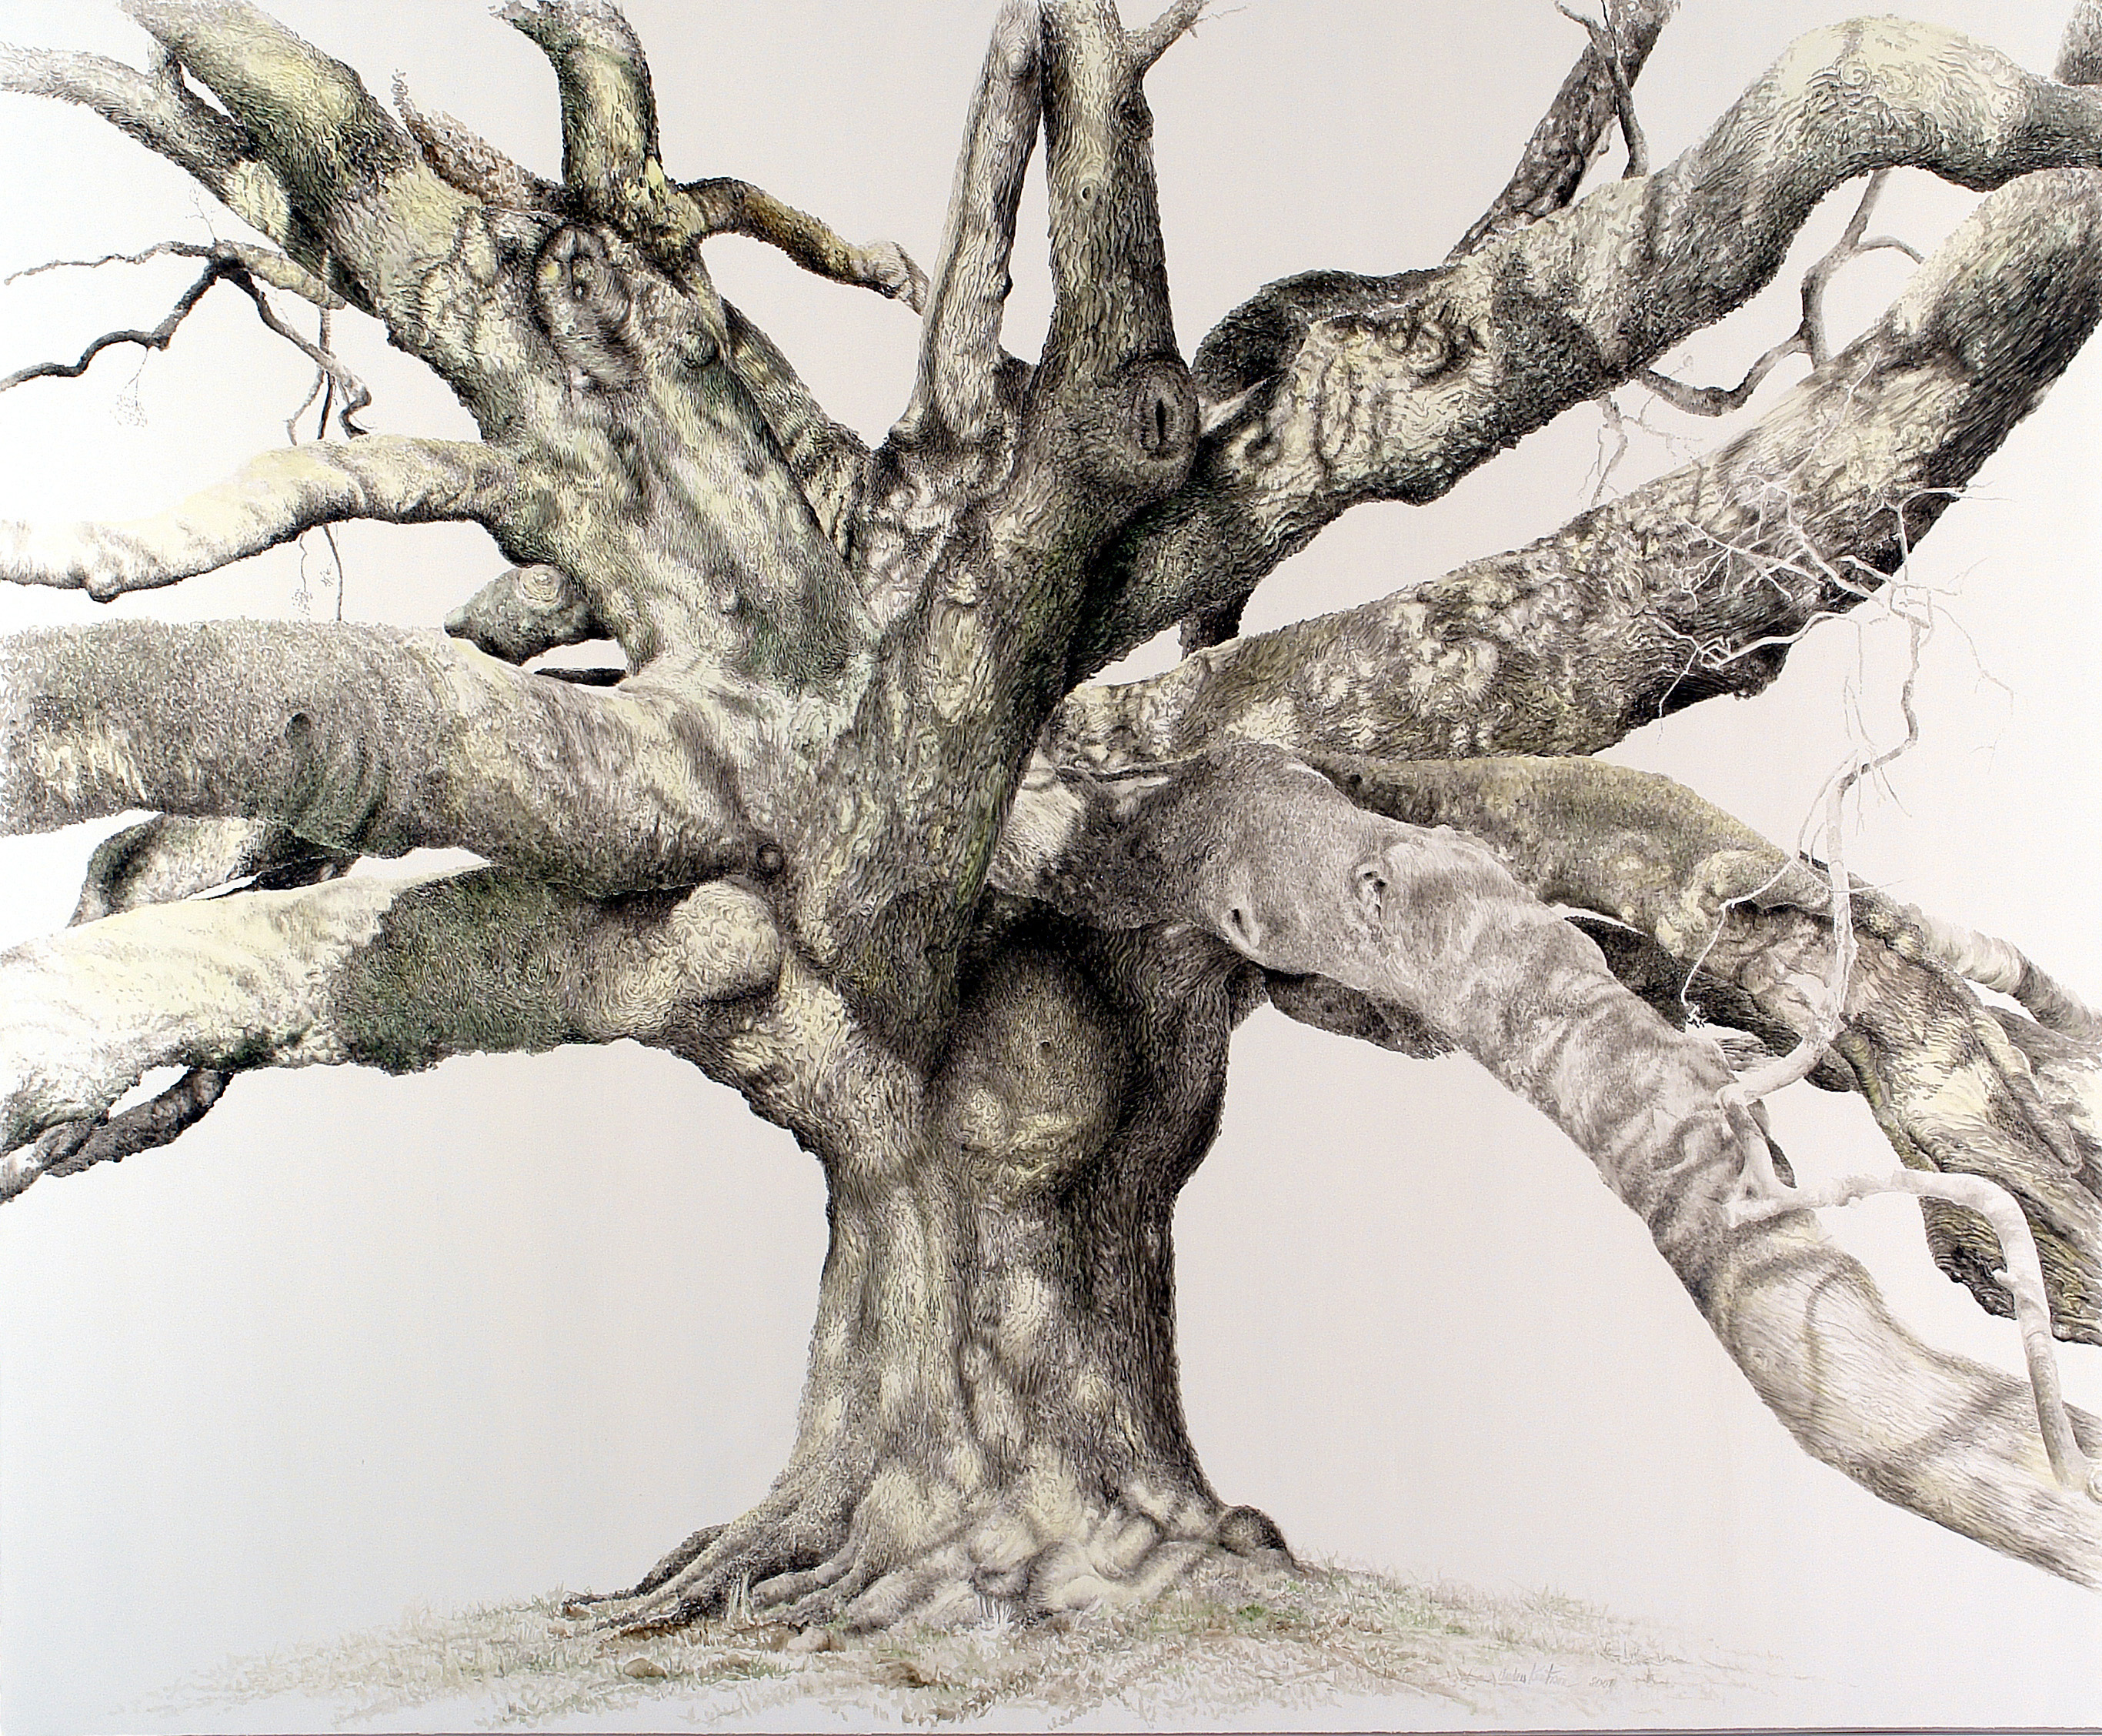 TREATY OAK -  U. of N. Florida 2006, 183 x 210cm